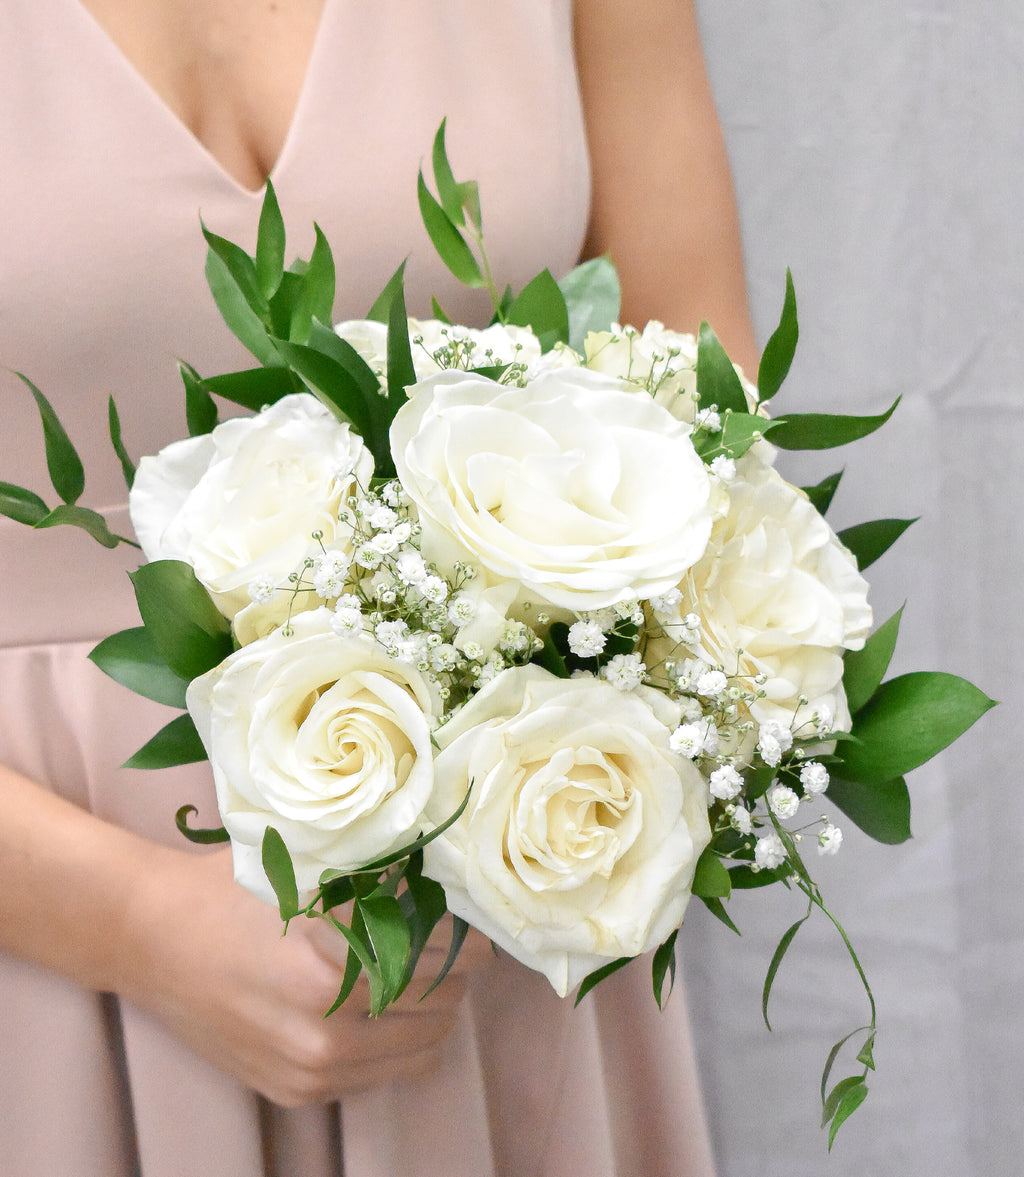 5-7 Roses Hand Tied Prom Special